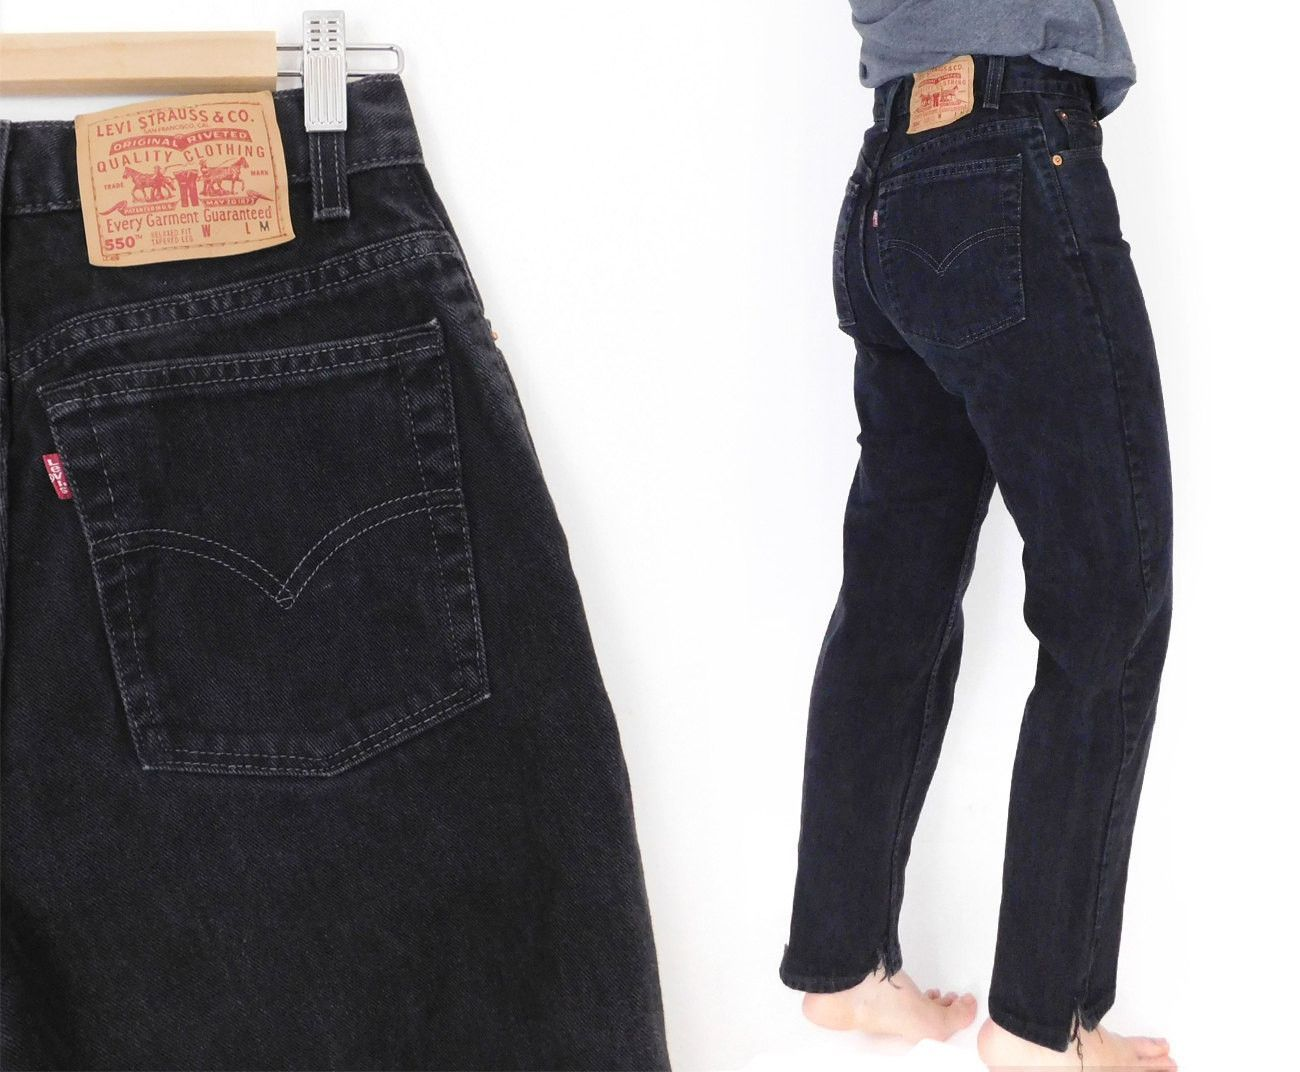 2c1f289029174 Sz 8 90s Black Levi s 550 High Waisted Jeans - Women s Black Denim Relaxed  Fit Tapered Leg Mom Jeans - 28